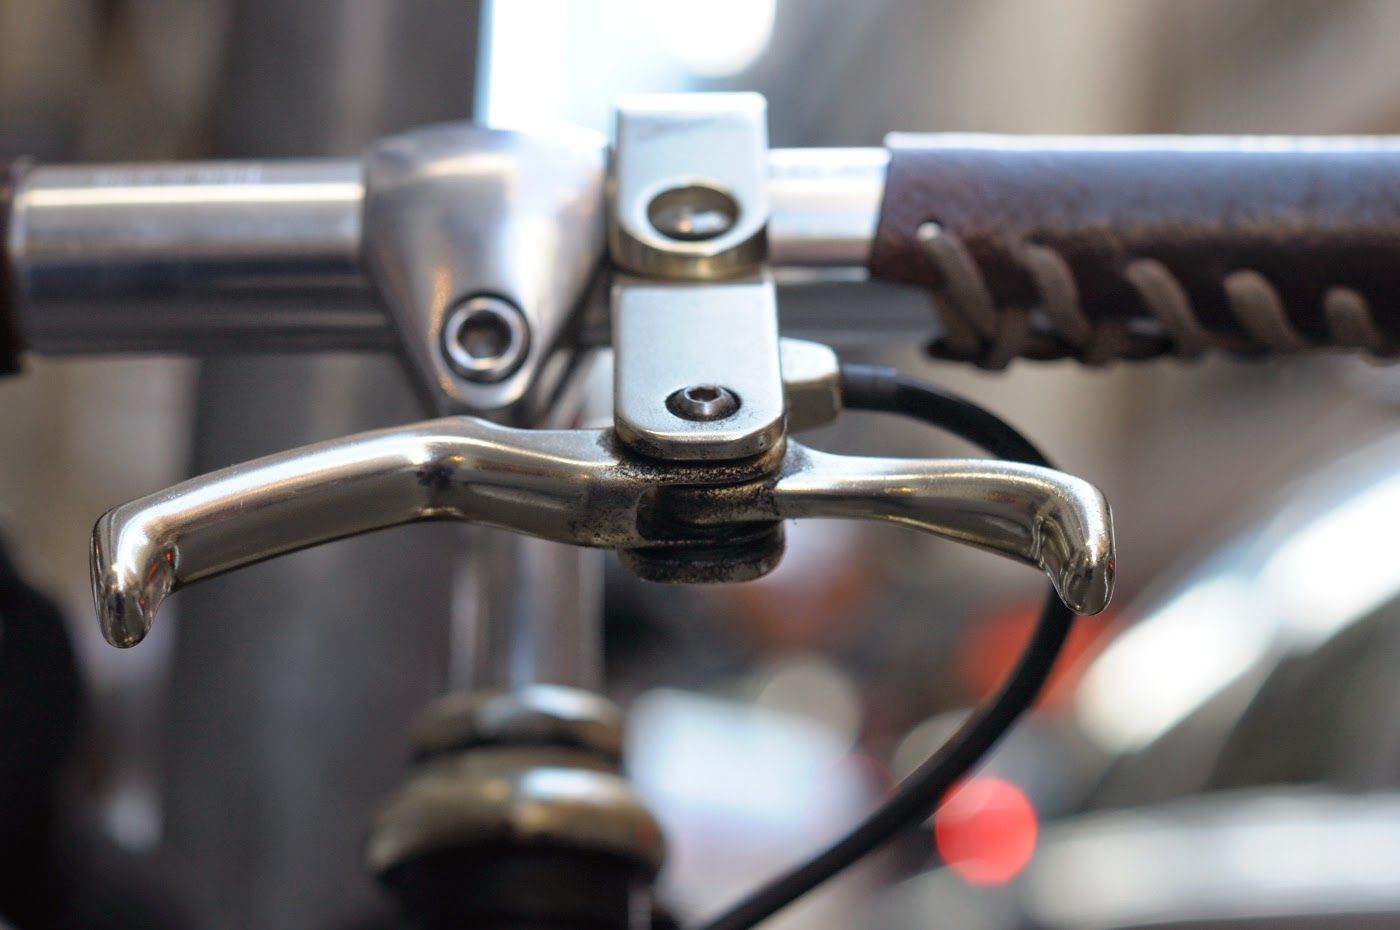 Bespoke, customisation, conversion, frame, Melbourne, Australia, tim macauley, the biketorialist, single speed, custom, flinders lane, bike, bicycle,  brake lever, brake, front brake